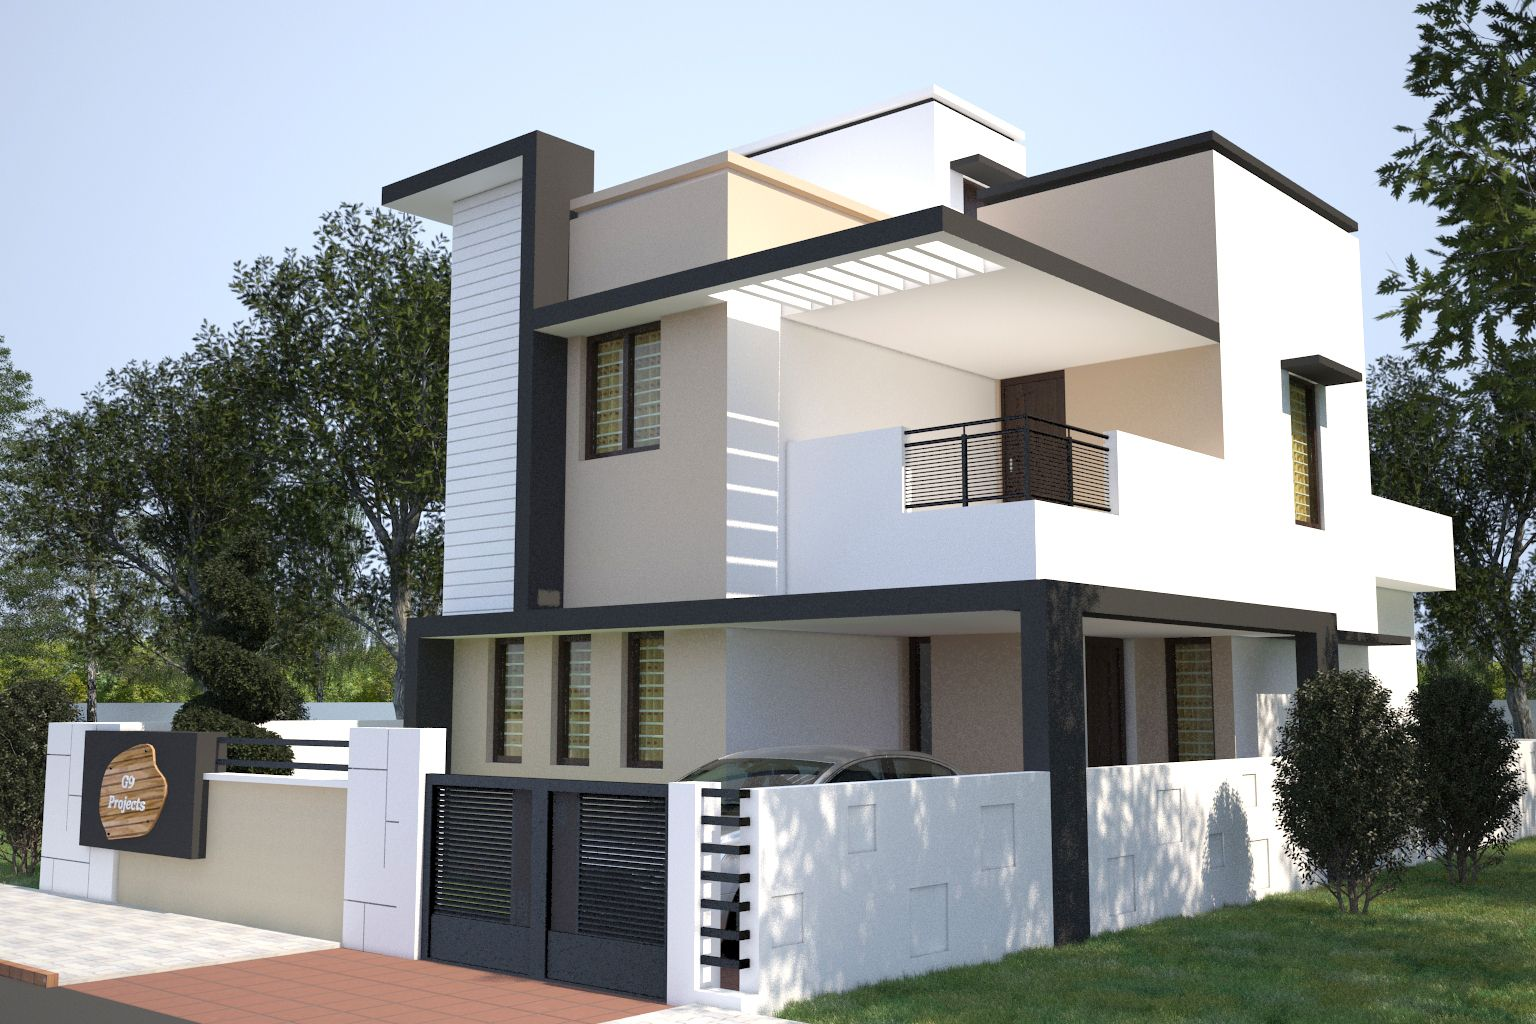 Elevations of residential buildings in indian photo Home design sites